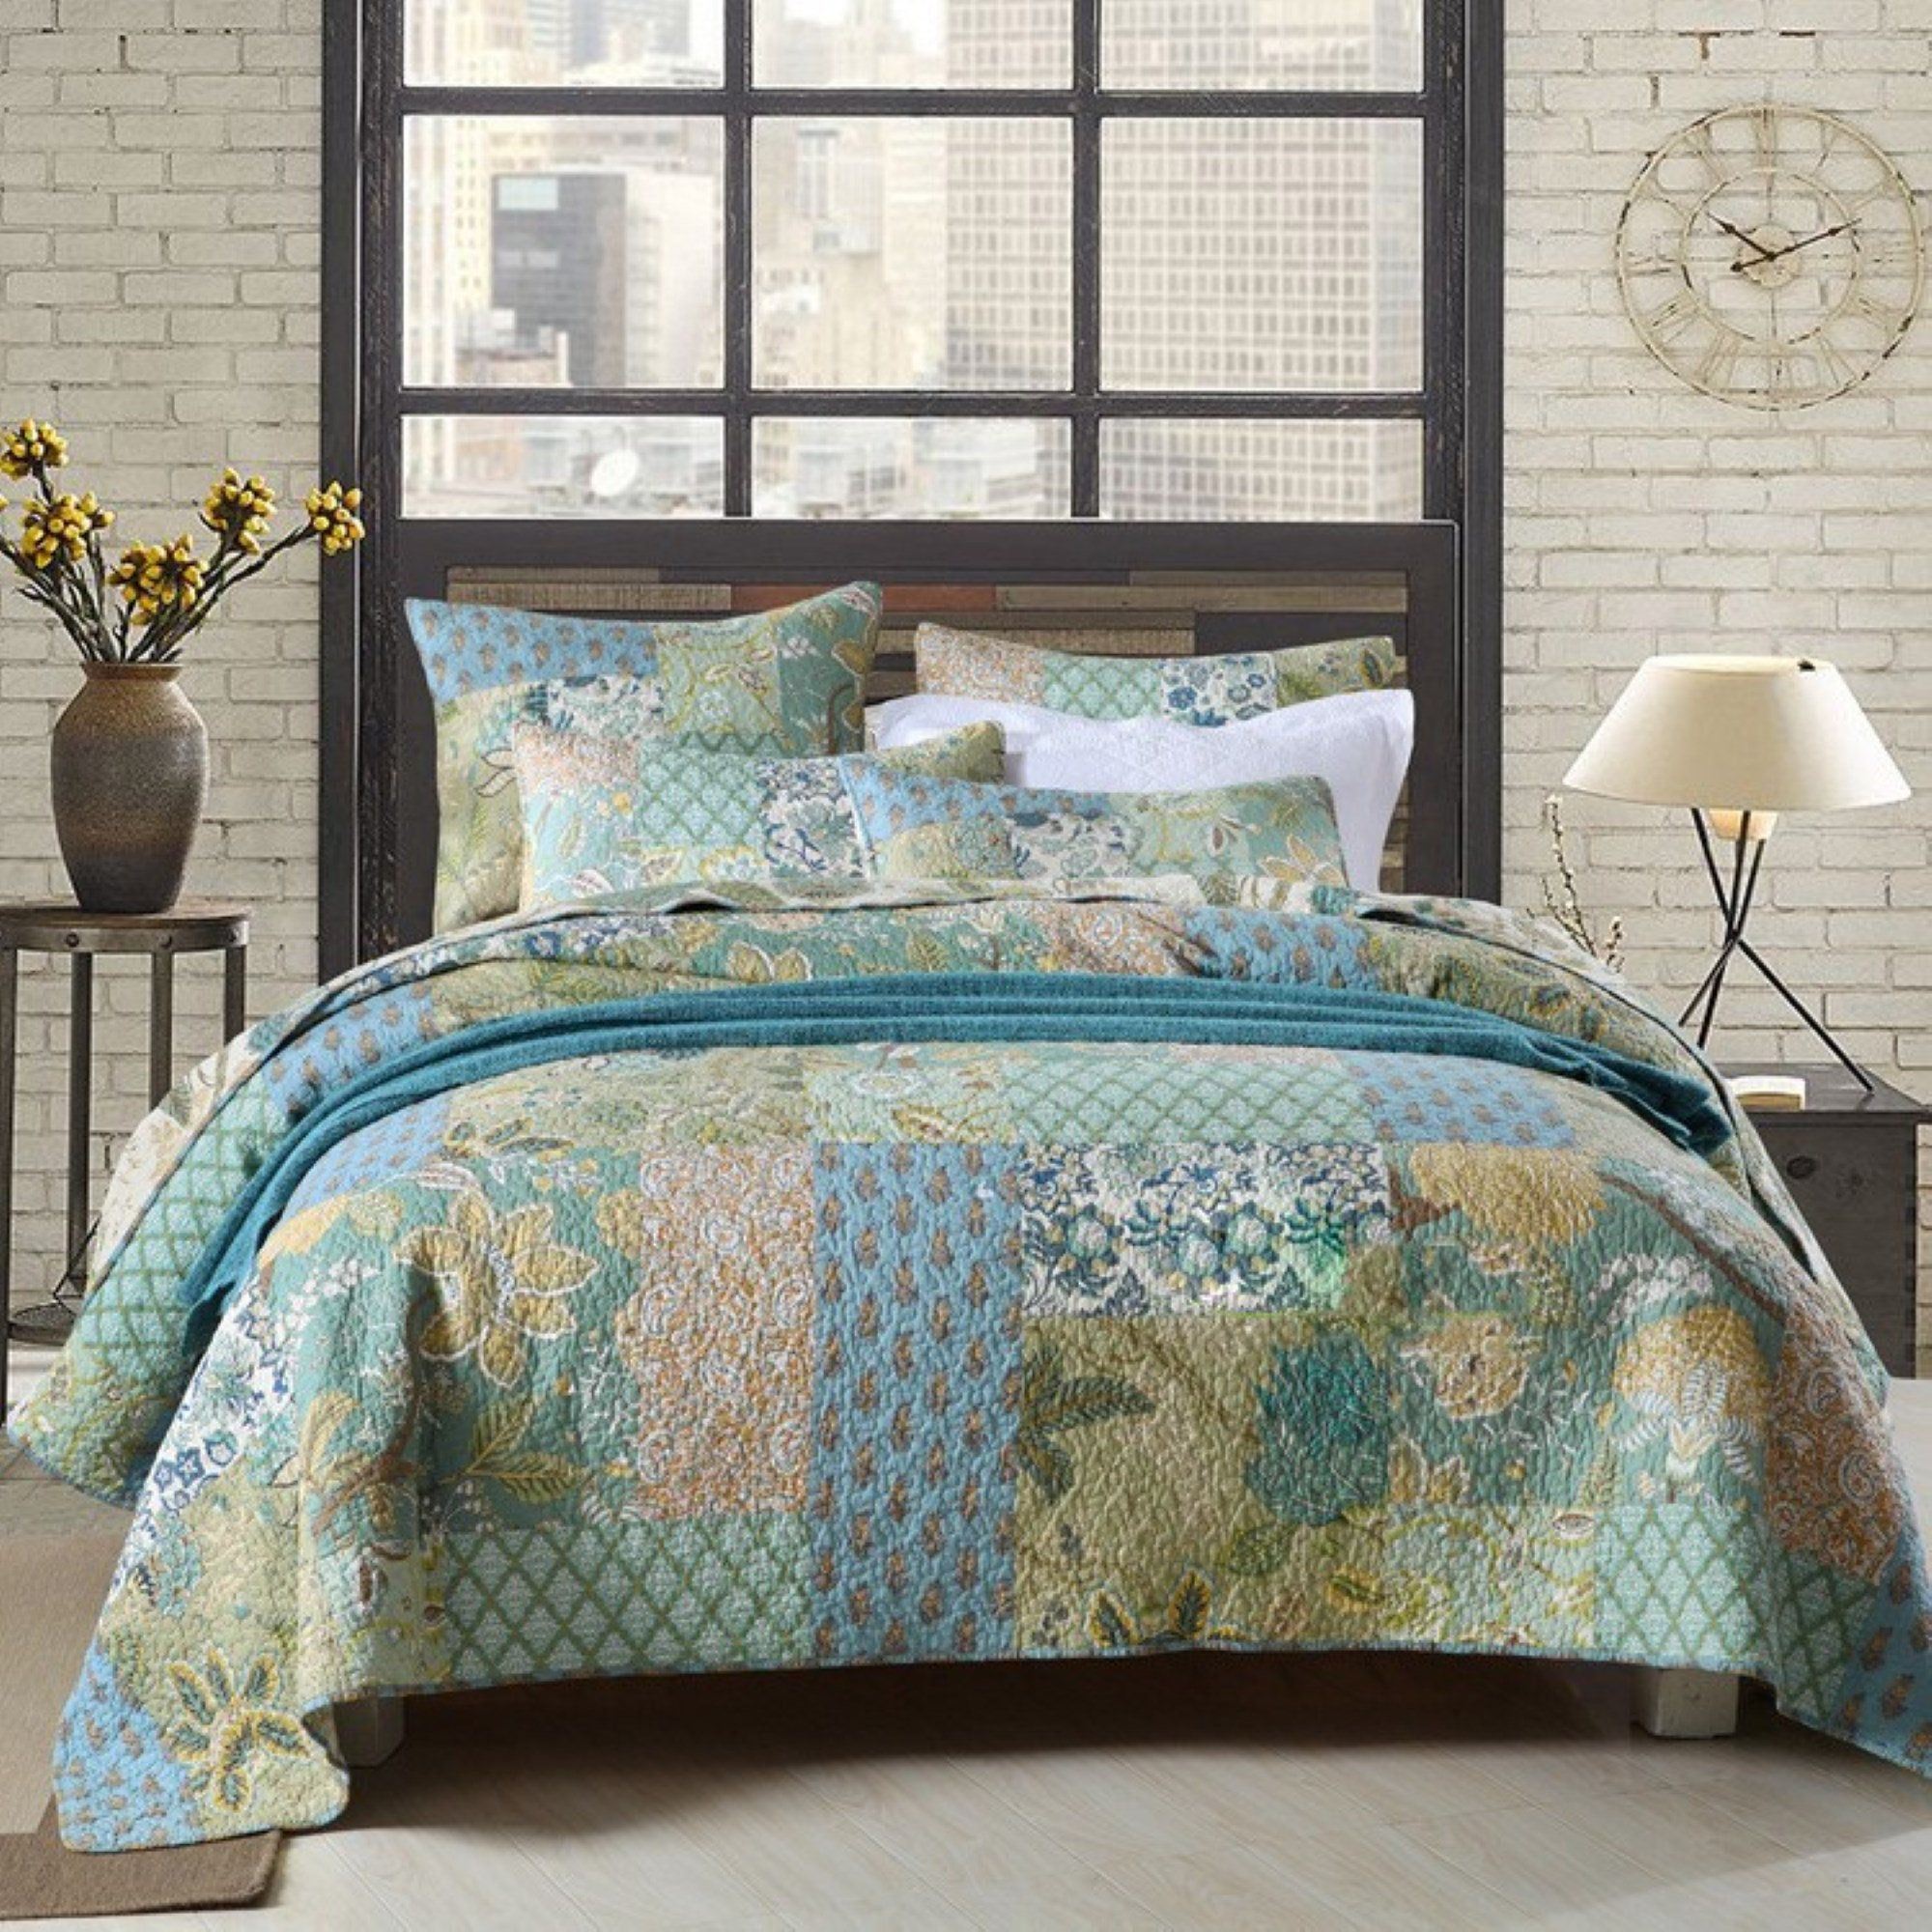 Hand Made King Size Quilt Patchwork Quilt Set With Pillows Farmhouse Quilted Blanket Rag Quilt One Of In 2020 Quilt Sets Bedding King Size Quilt Sets Quilt Sets